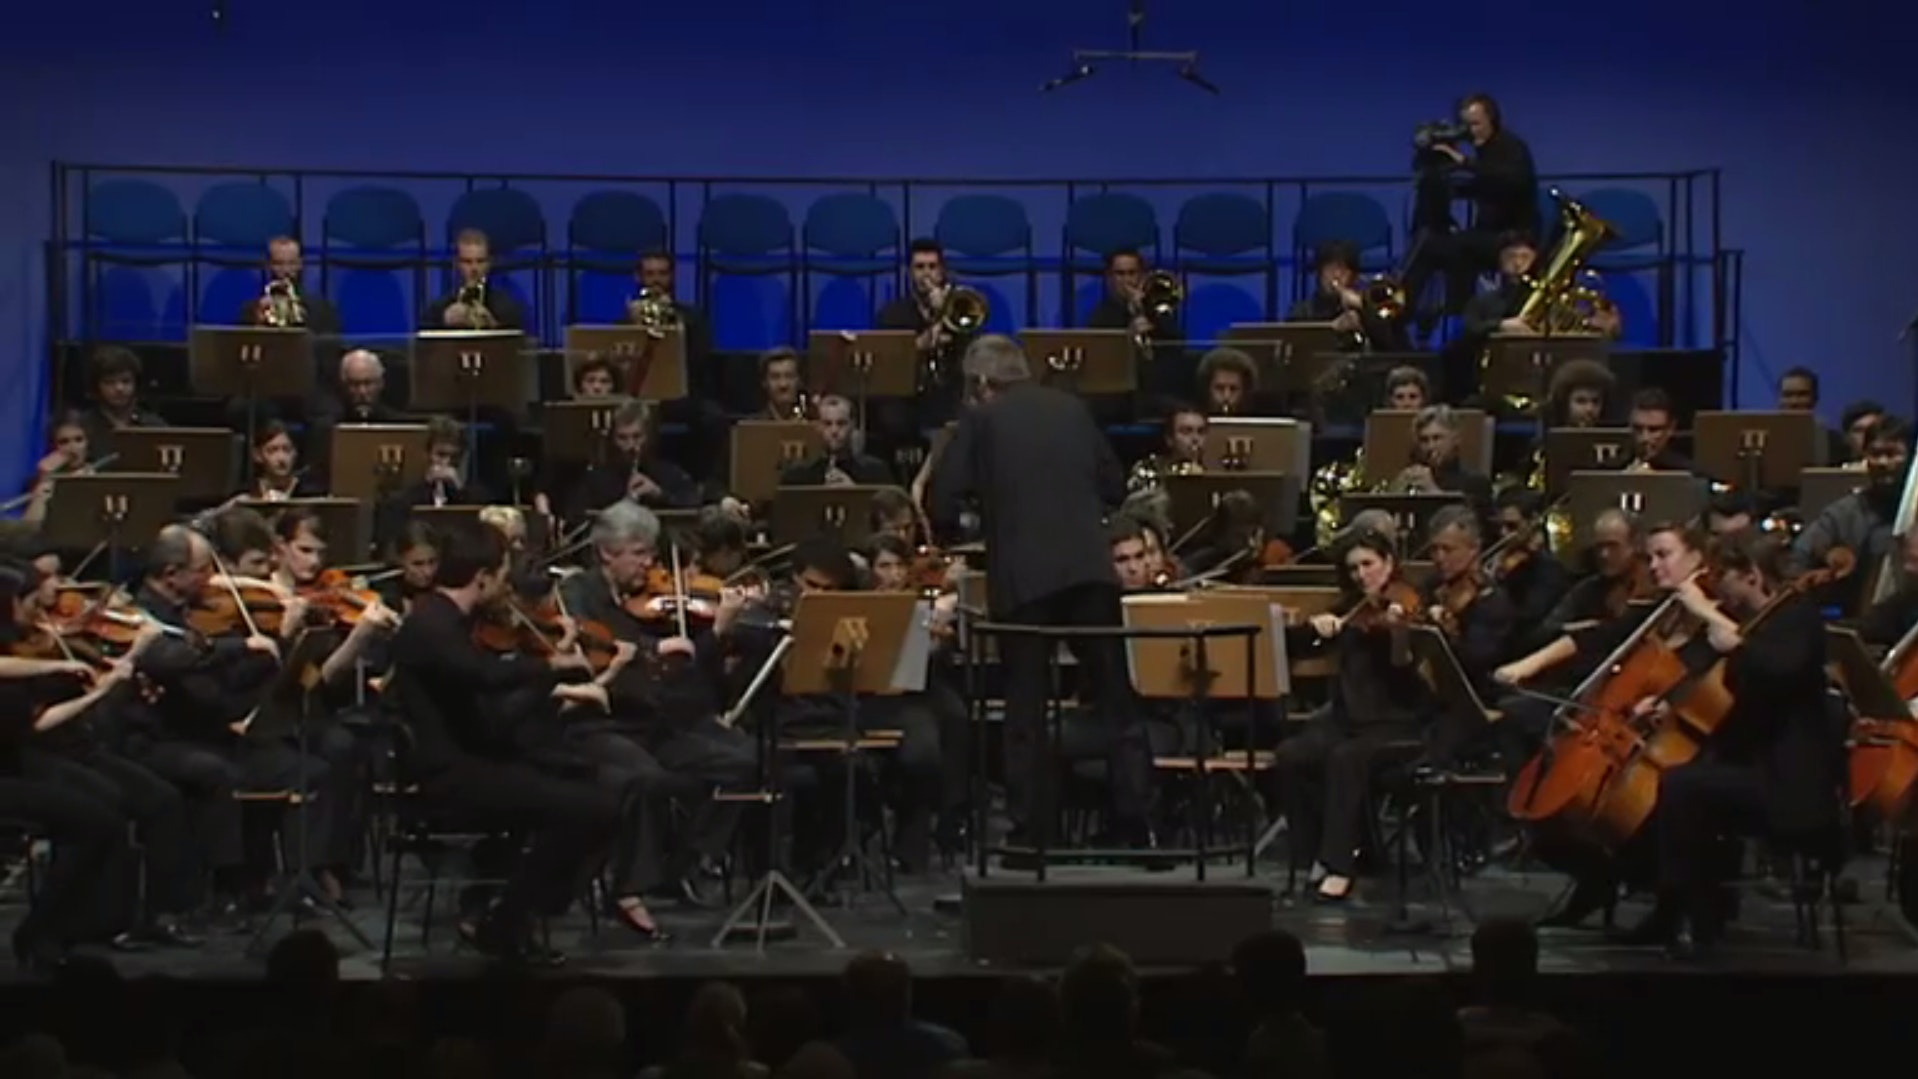 The Birth of a Symphony